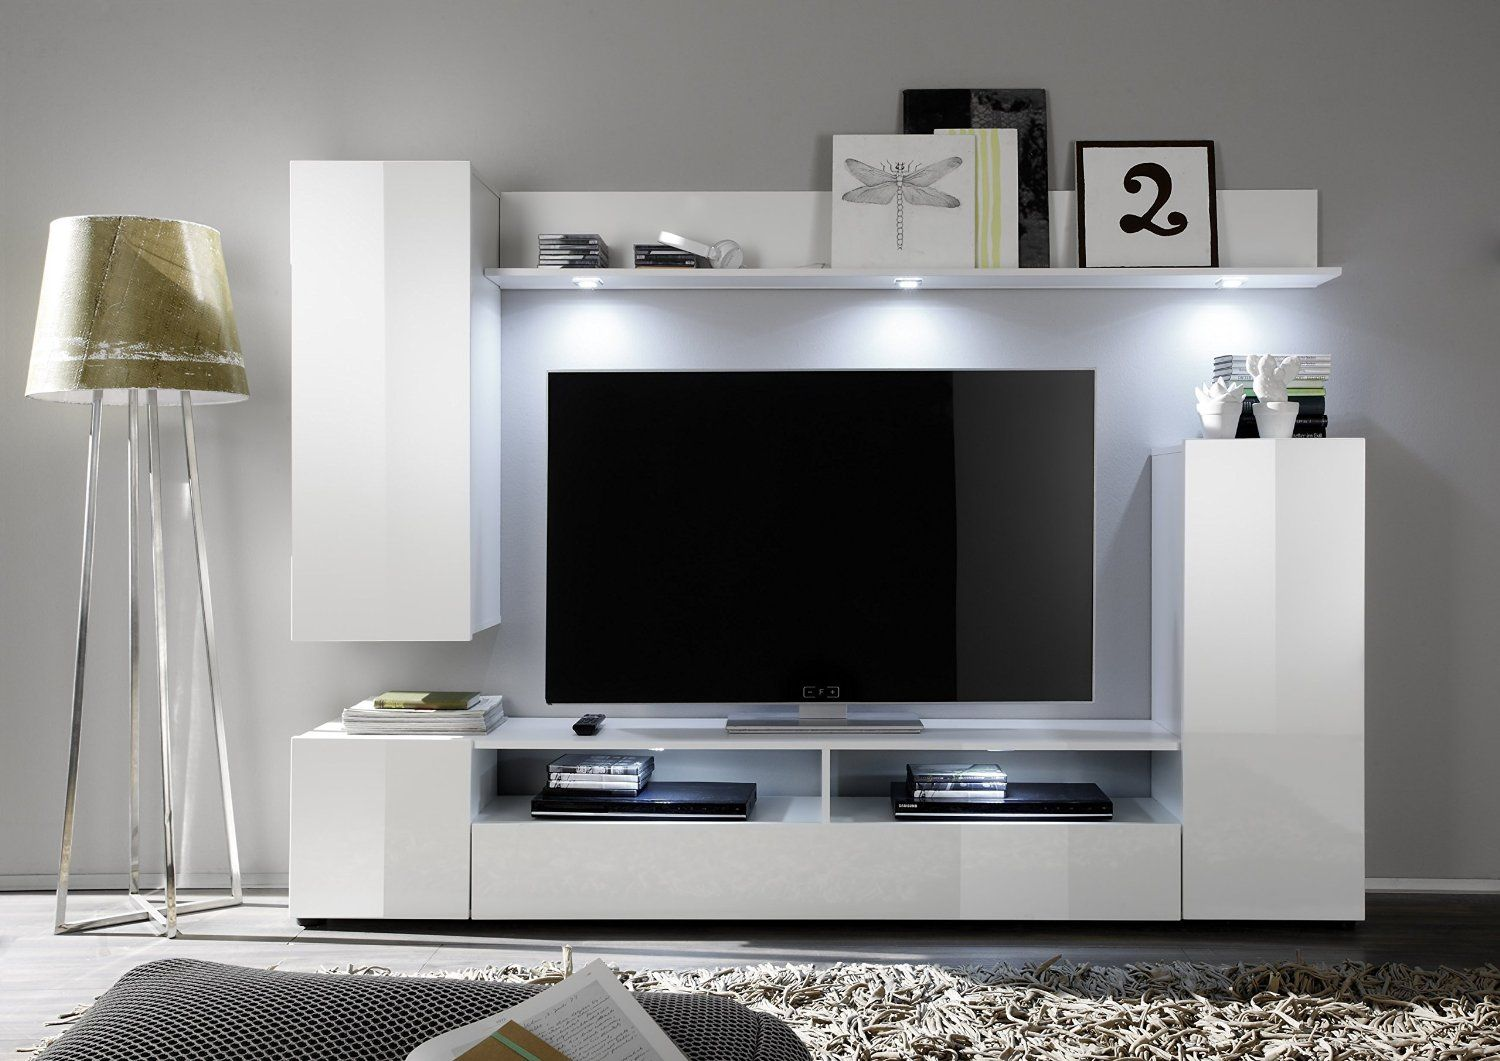 Furnline 1396 945 01 dos high gloss tv stand wall unit for White high gloss kitchen wall units